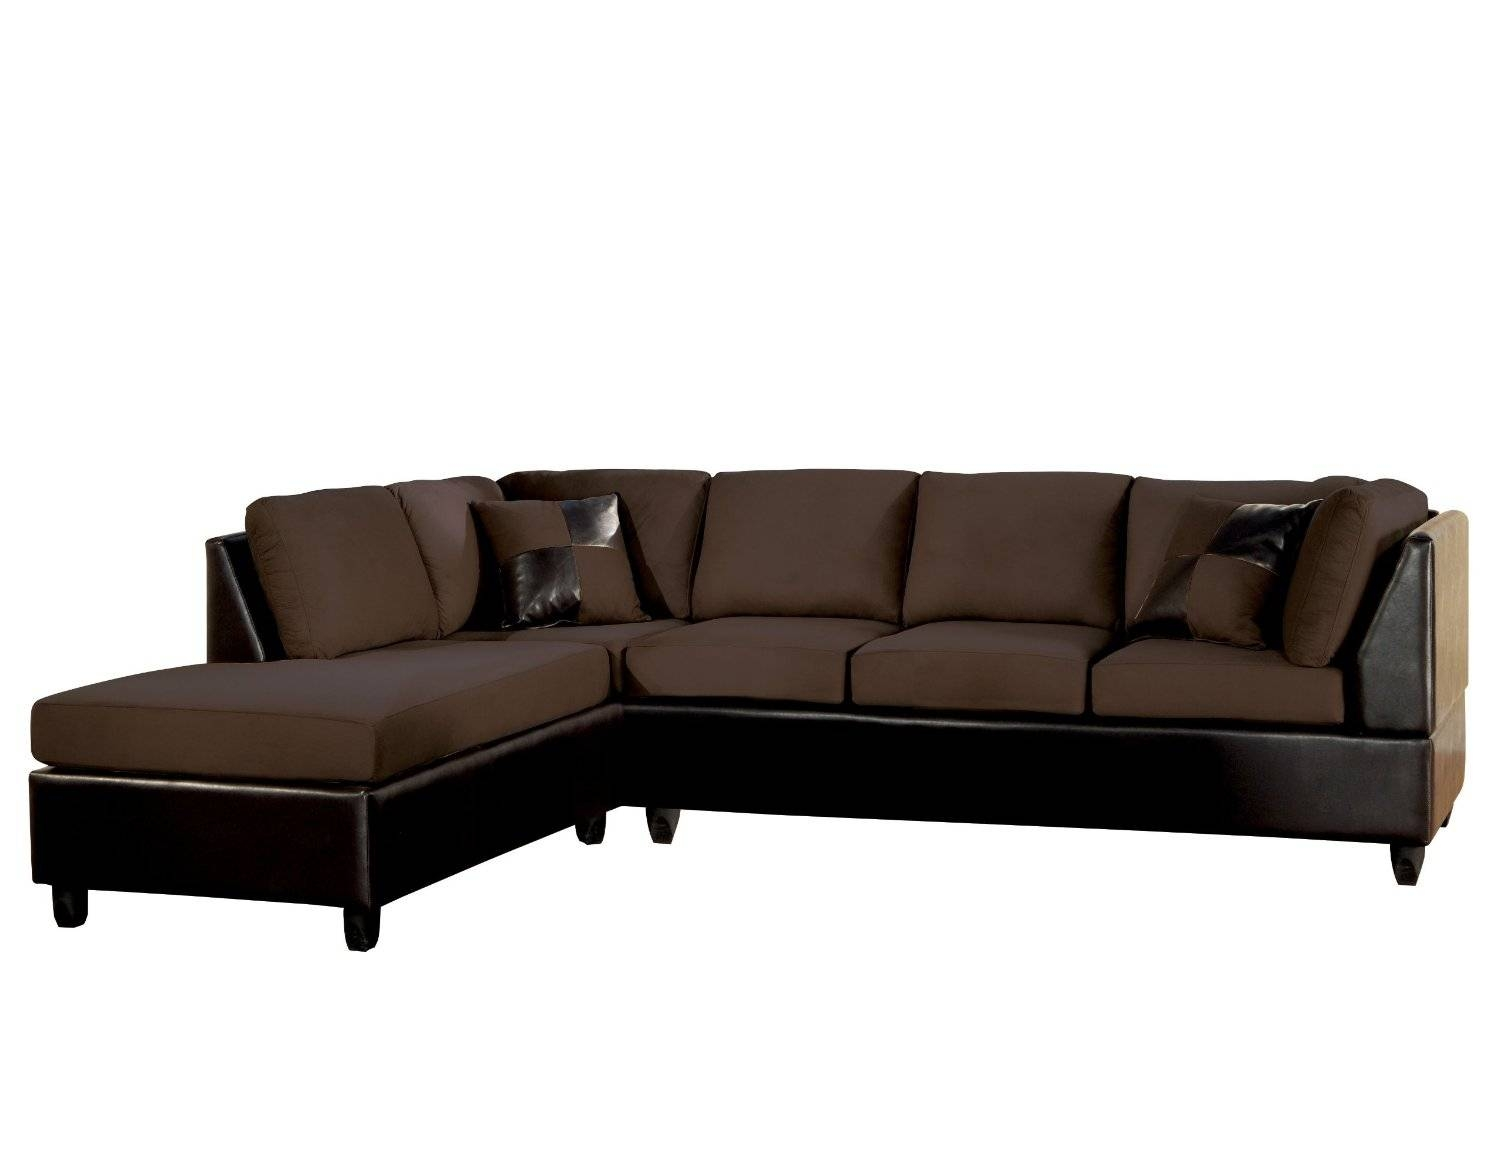 Furniture & Rug: Fancy Sectional Sleeper Sofa For Best Home pertaining to Queen Sofa Sleeper Sectional Microfiber (Image 5 of 25)